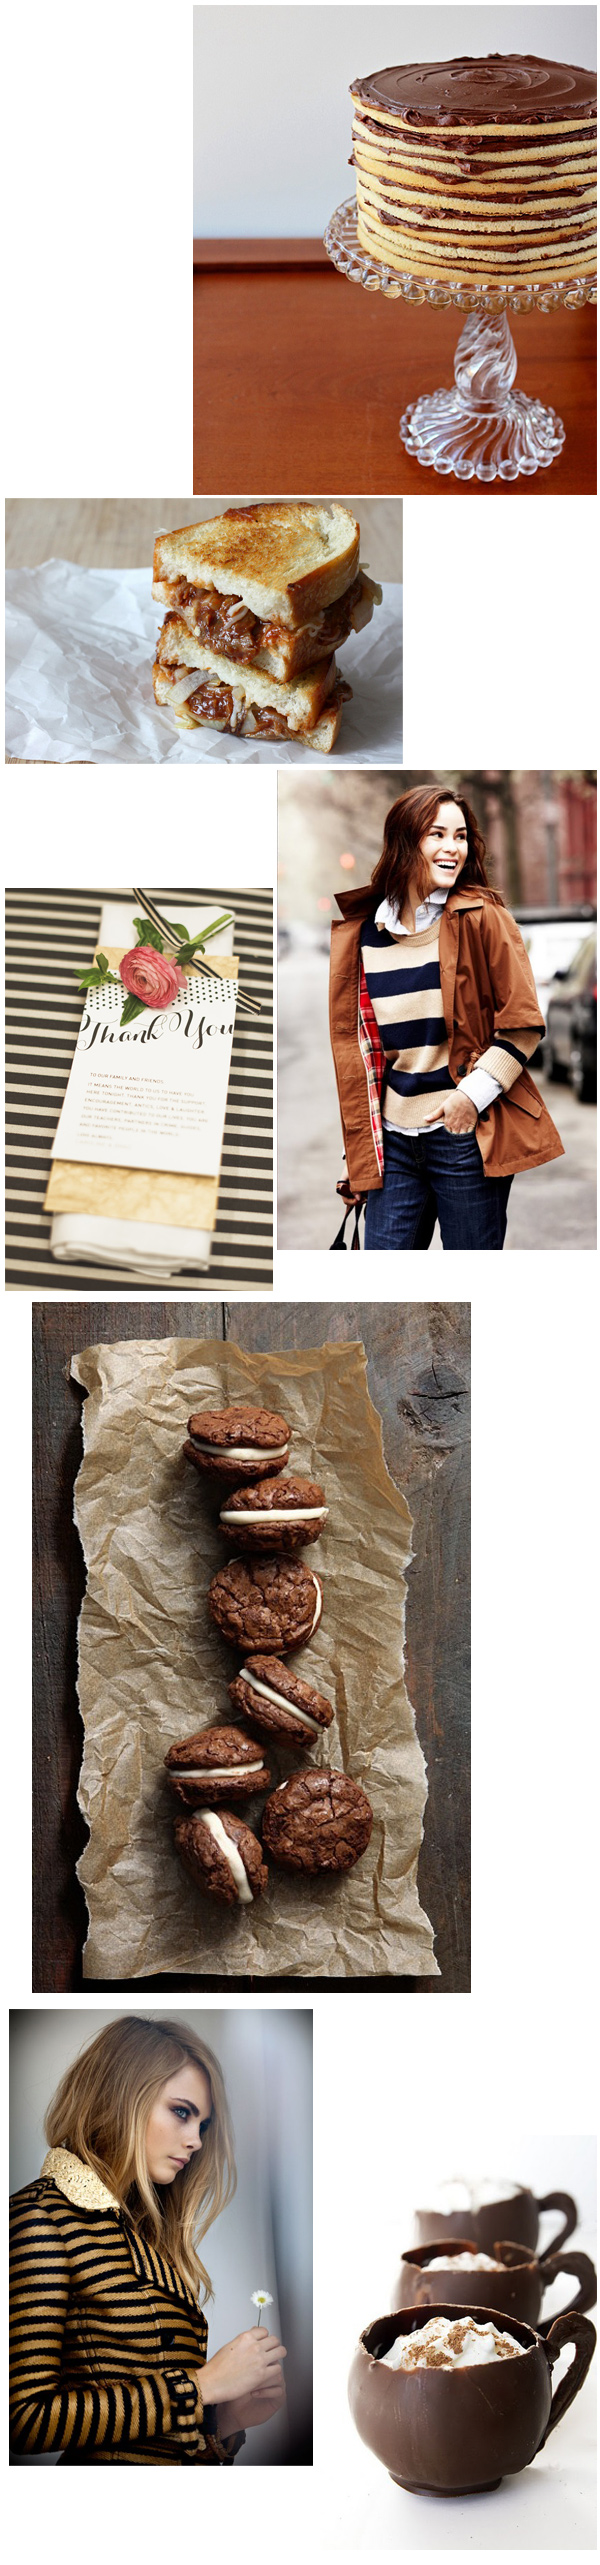 Cupcakes for Breakfast: wint layers - cakes, stripes, brownie sandwiches